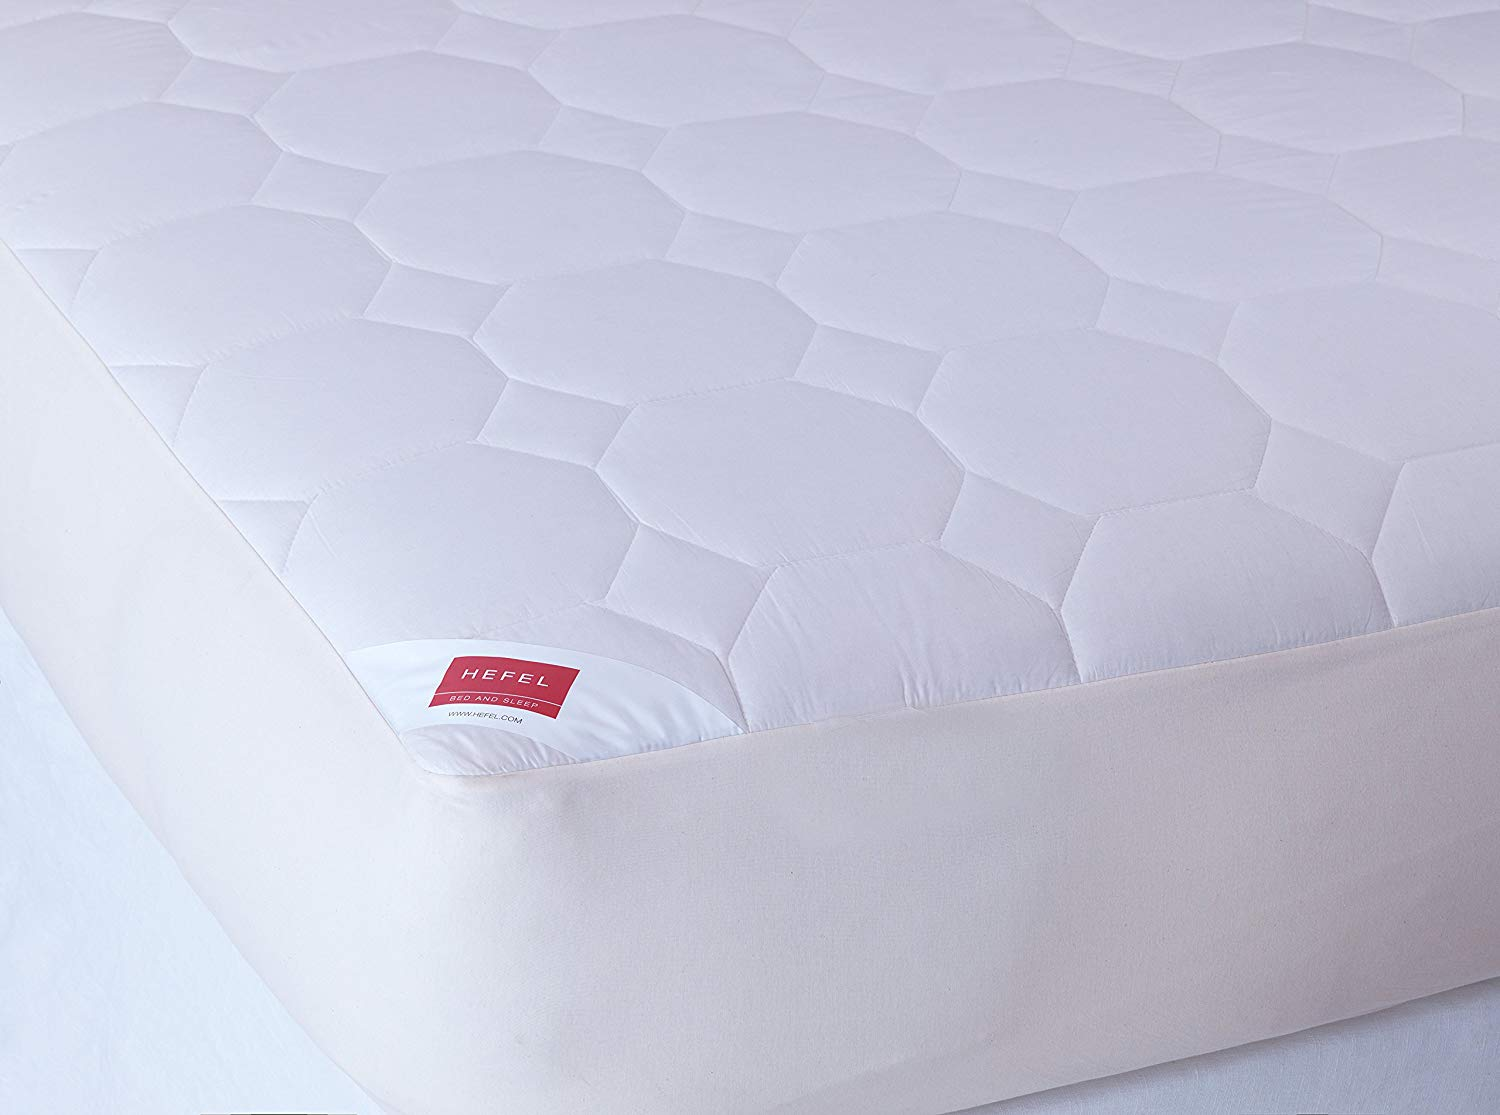 Hefel Wool Mattress Topper review by www.dailysleep.org